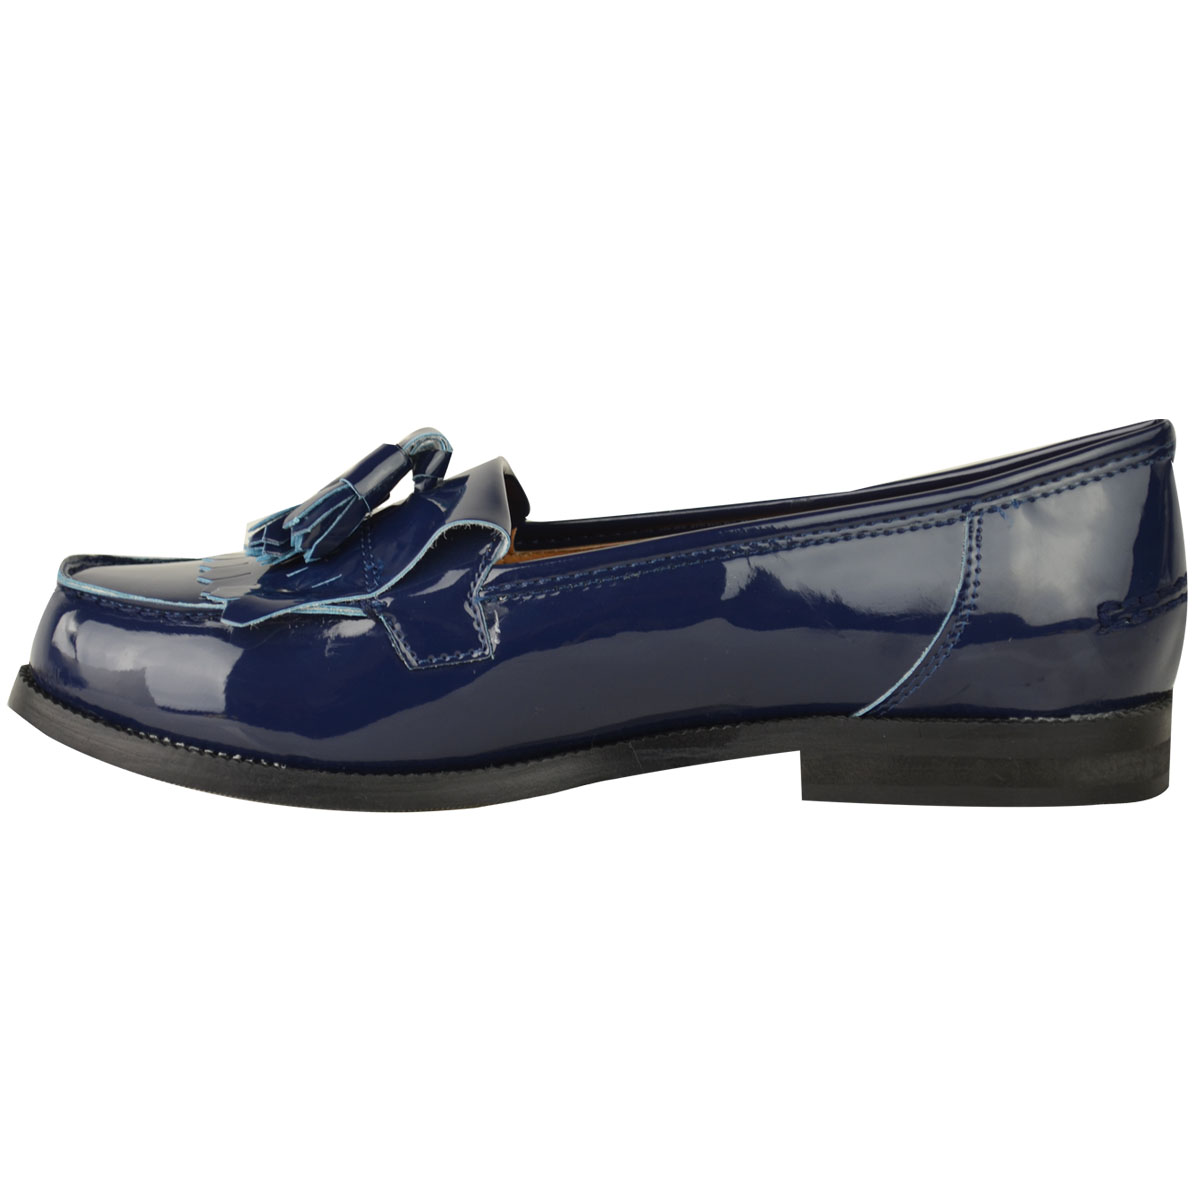 Womens-Ladies-Loafers-Brogues-Pumps-Casual-School-Office-Comfy-Work-Flats-Size thumbnail 28